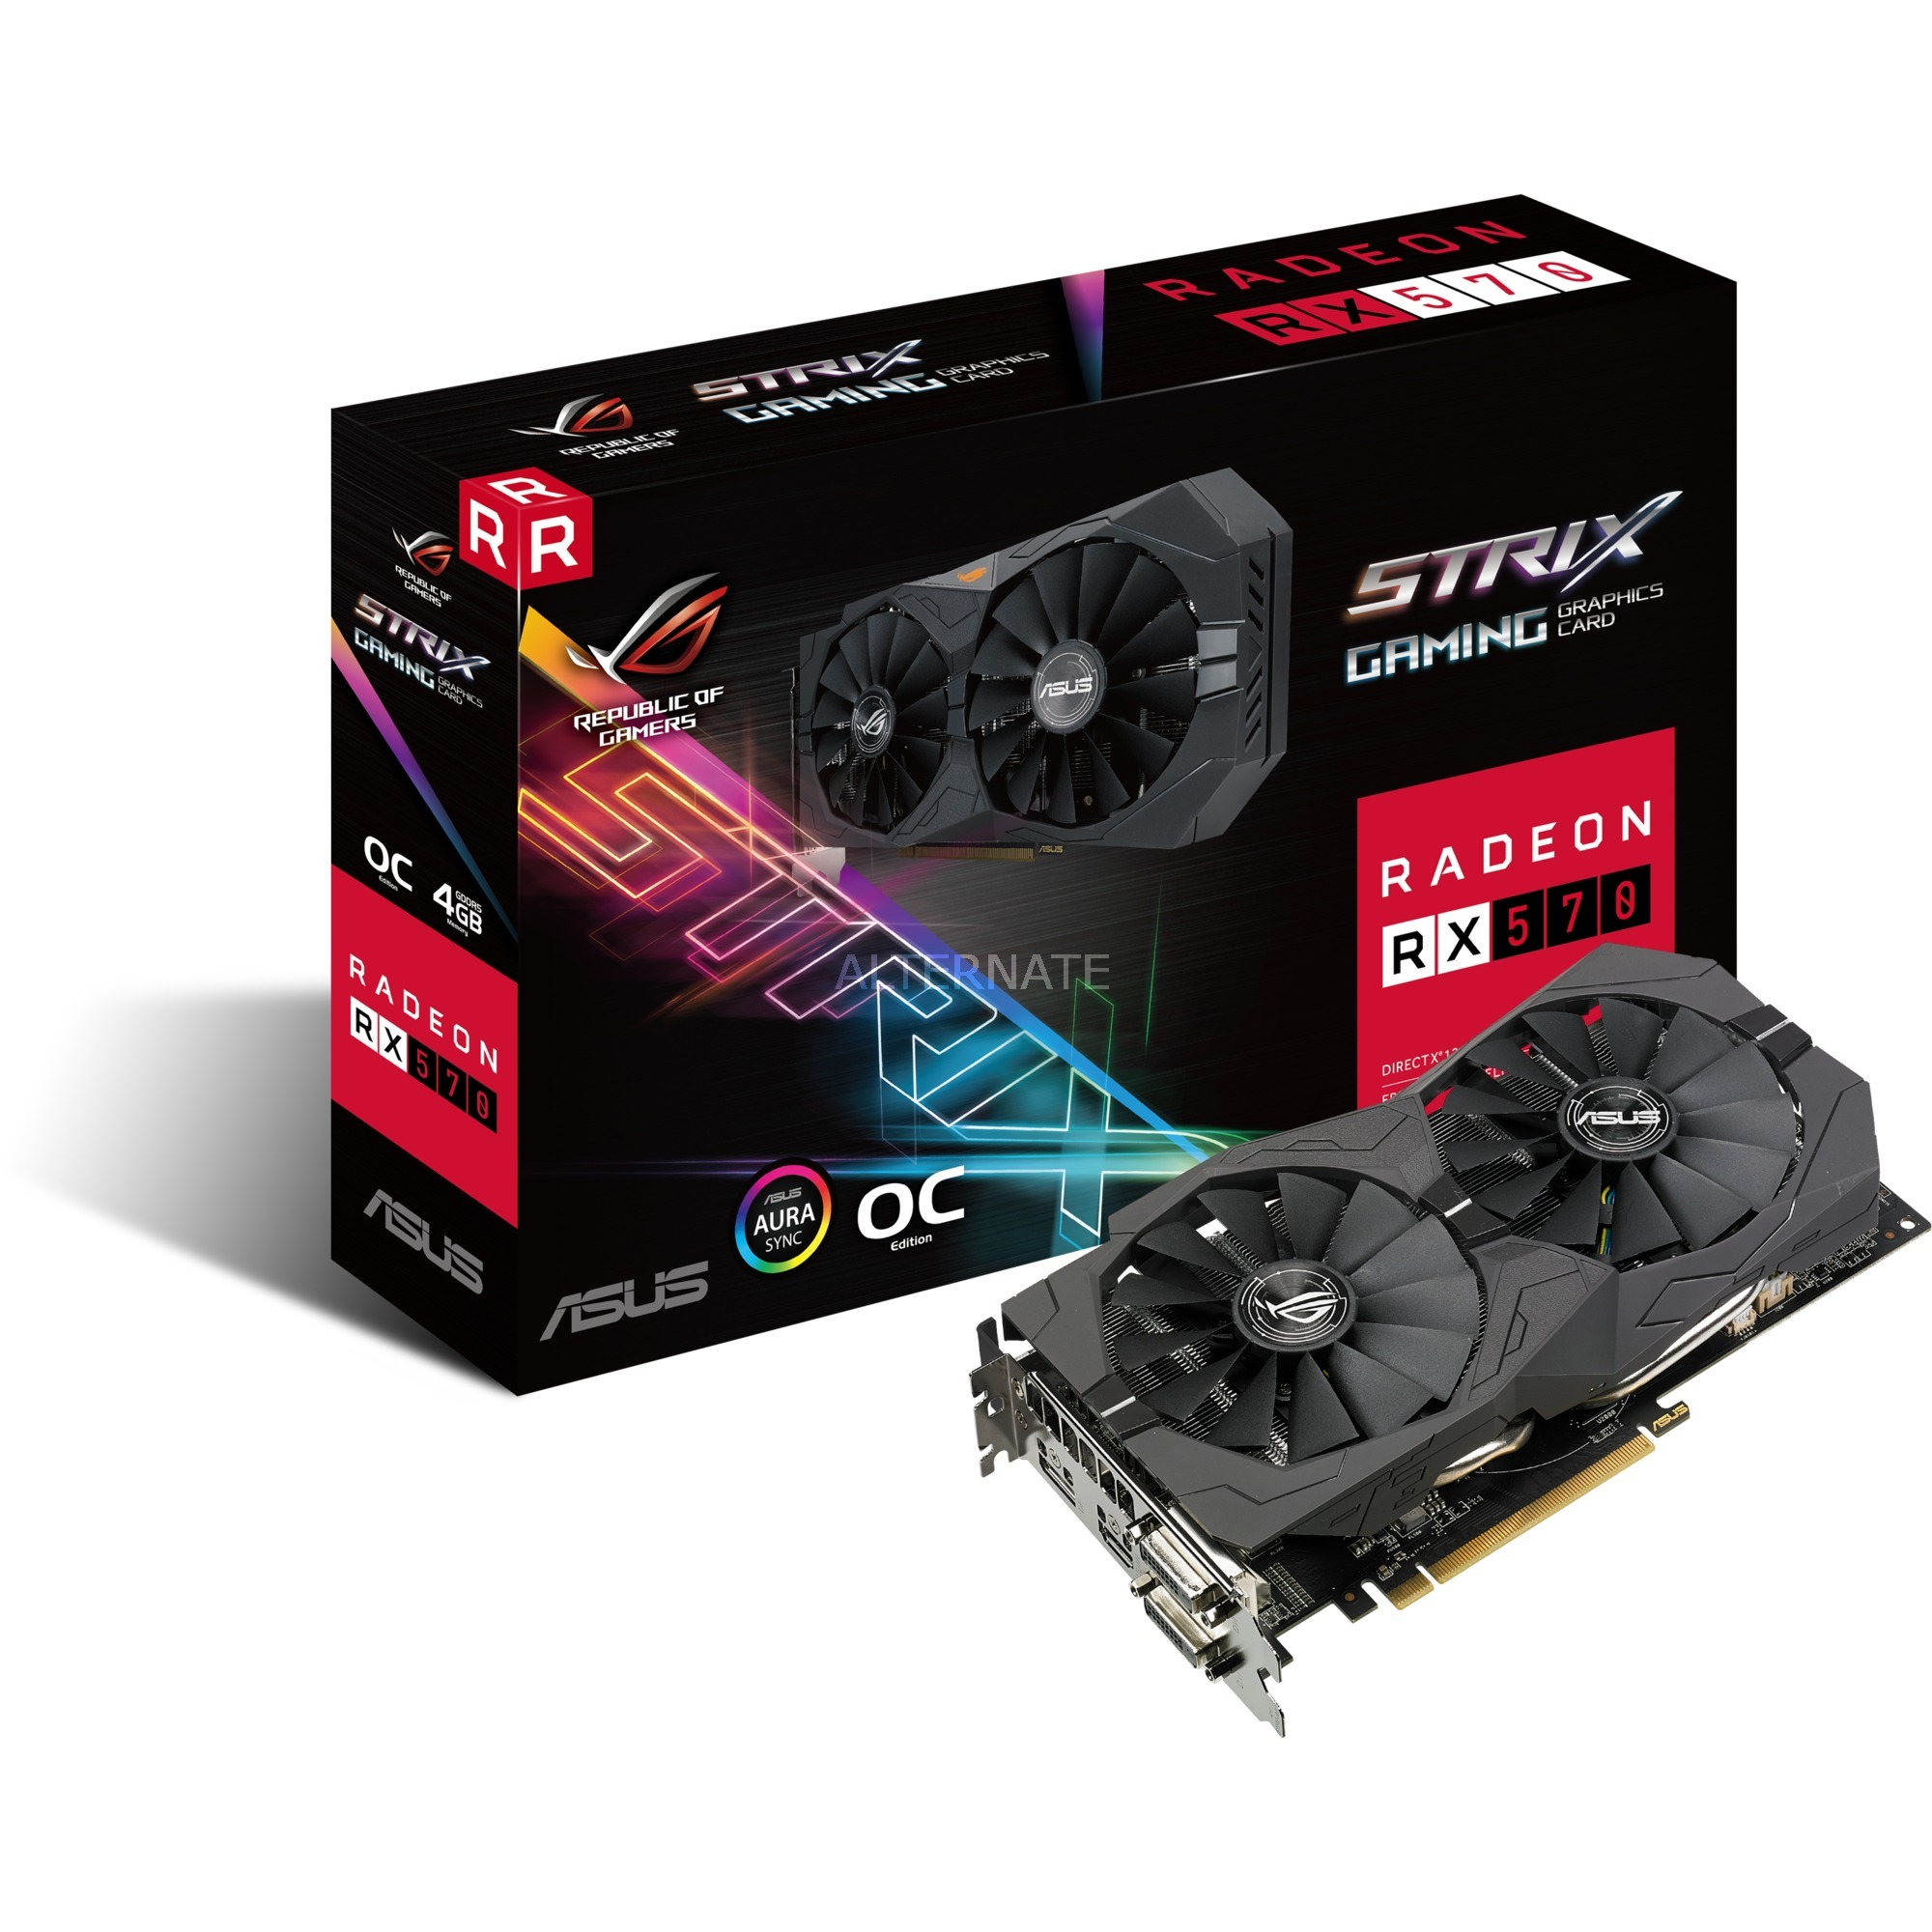 ROG-STRIX-RX570-O4G-GAMING, Carte graphique